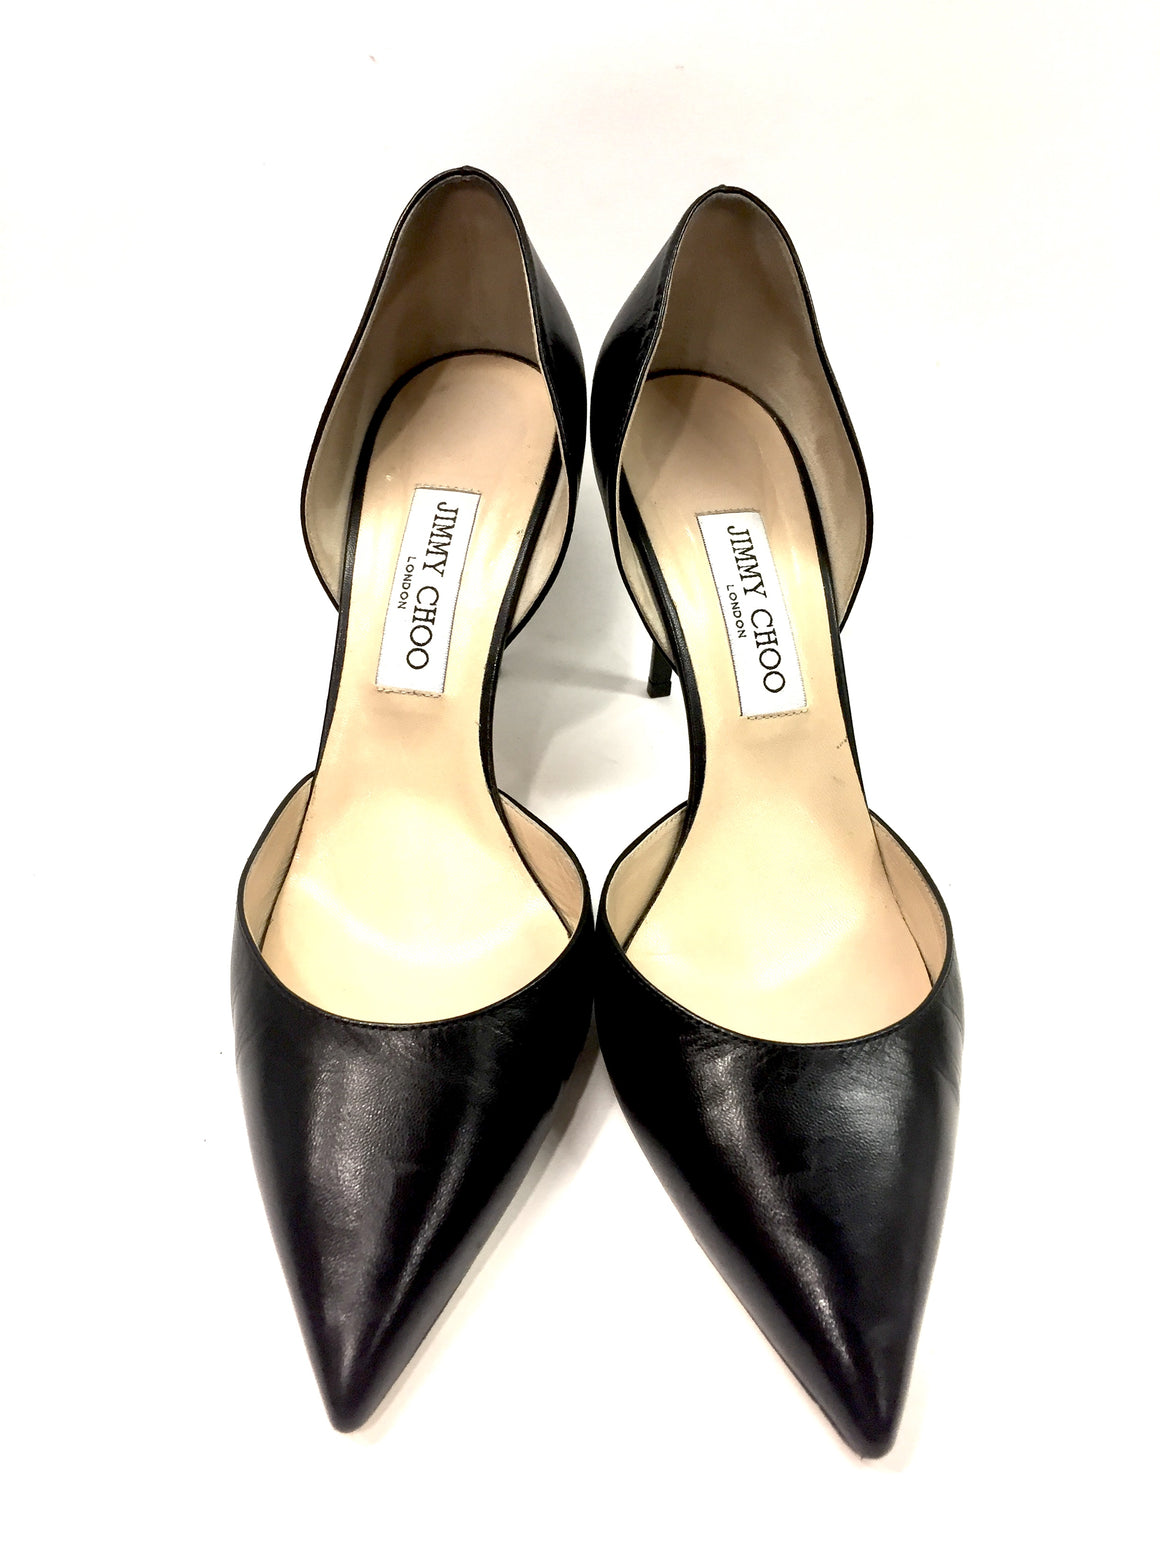 JIMMY CHOO Black Leather Pointed-Toe D'Orsay Heel Pumps Sz40.5/10